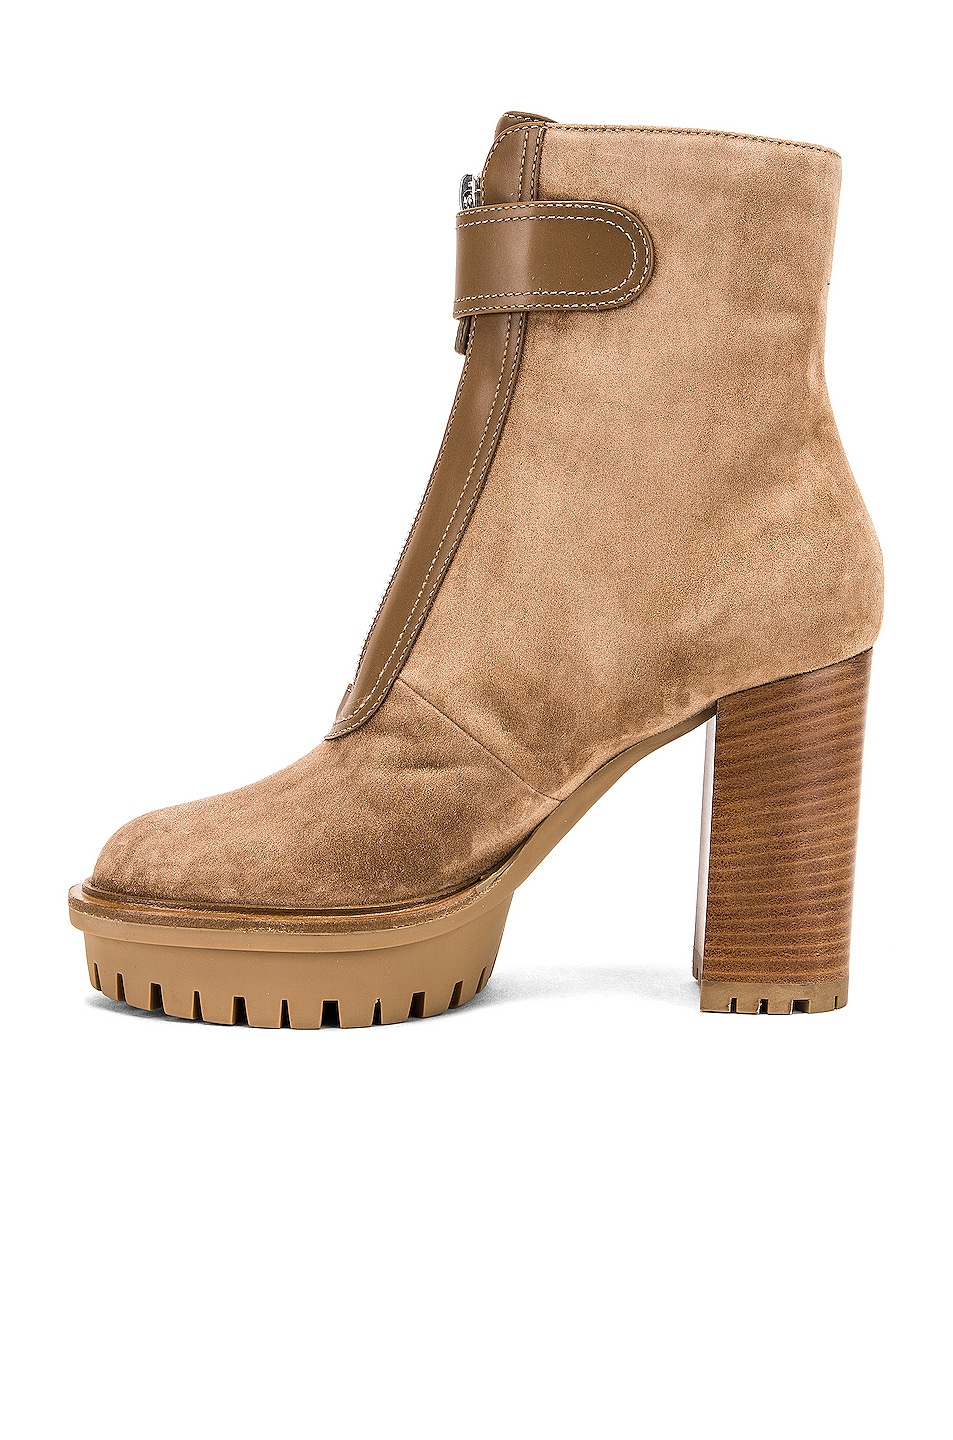 Image 5 of Gianvito Rossi Julian Zipper Ankle Heel Boots in Camel